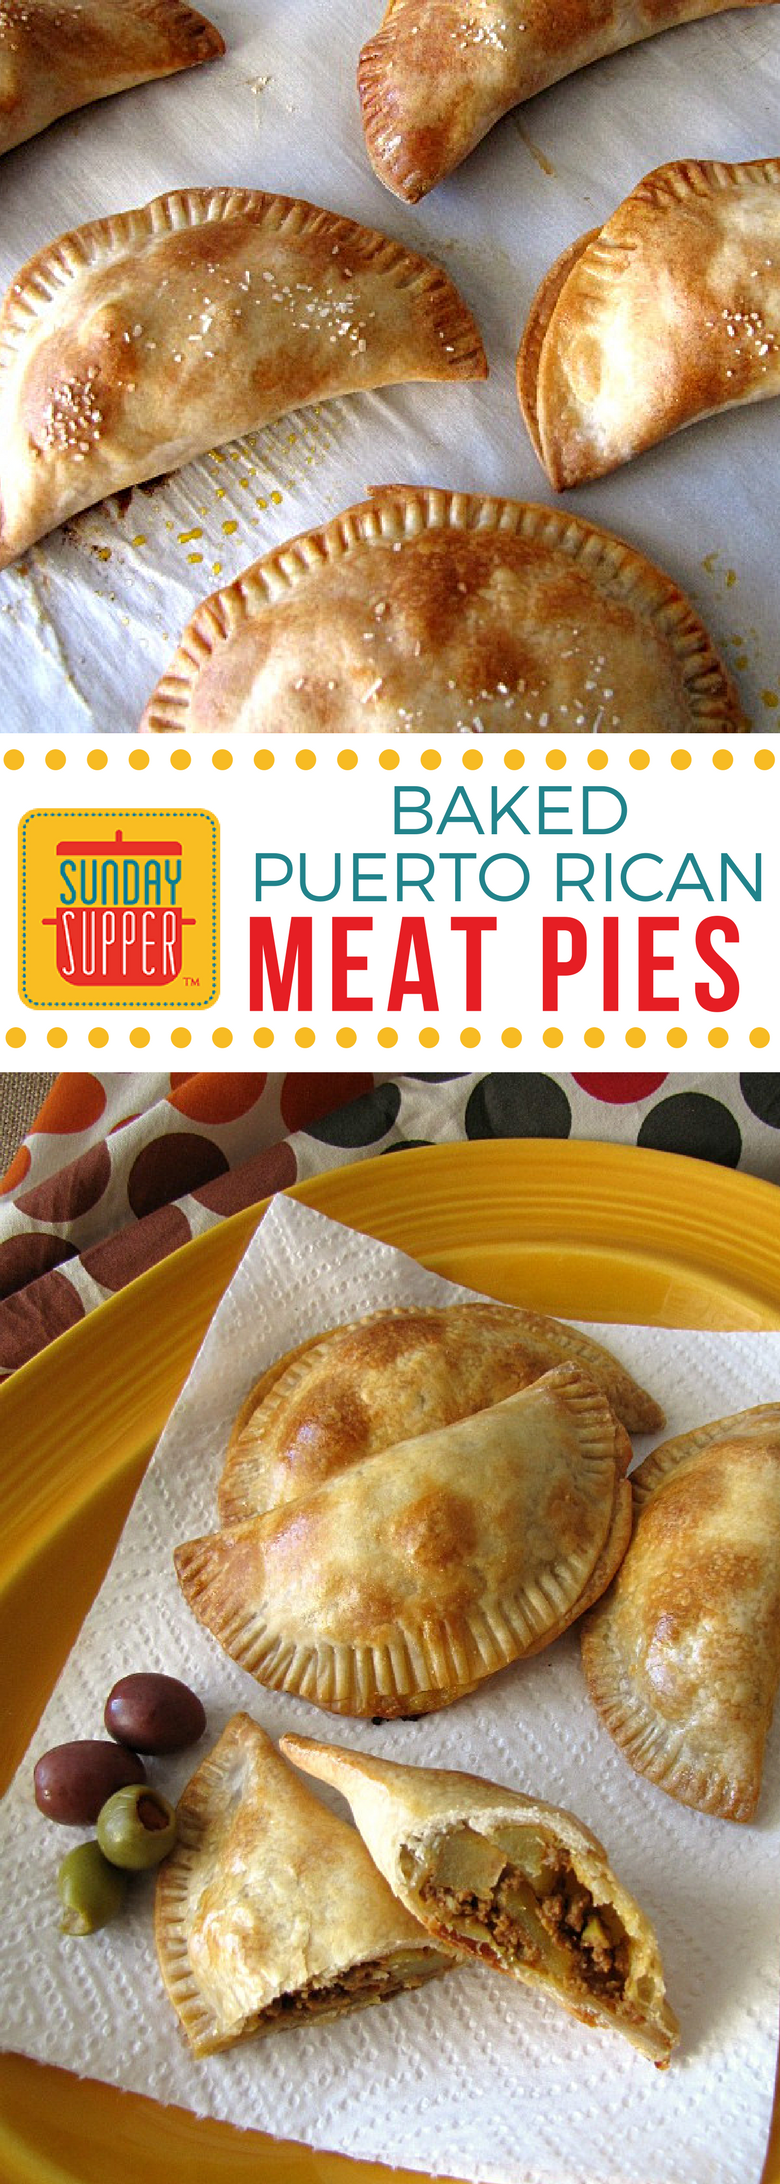 Baked Puerto Rican Meat Pies Are A Version Of The Fried